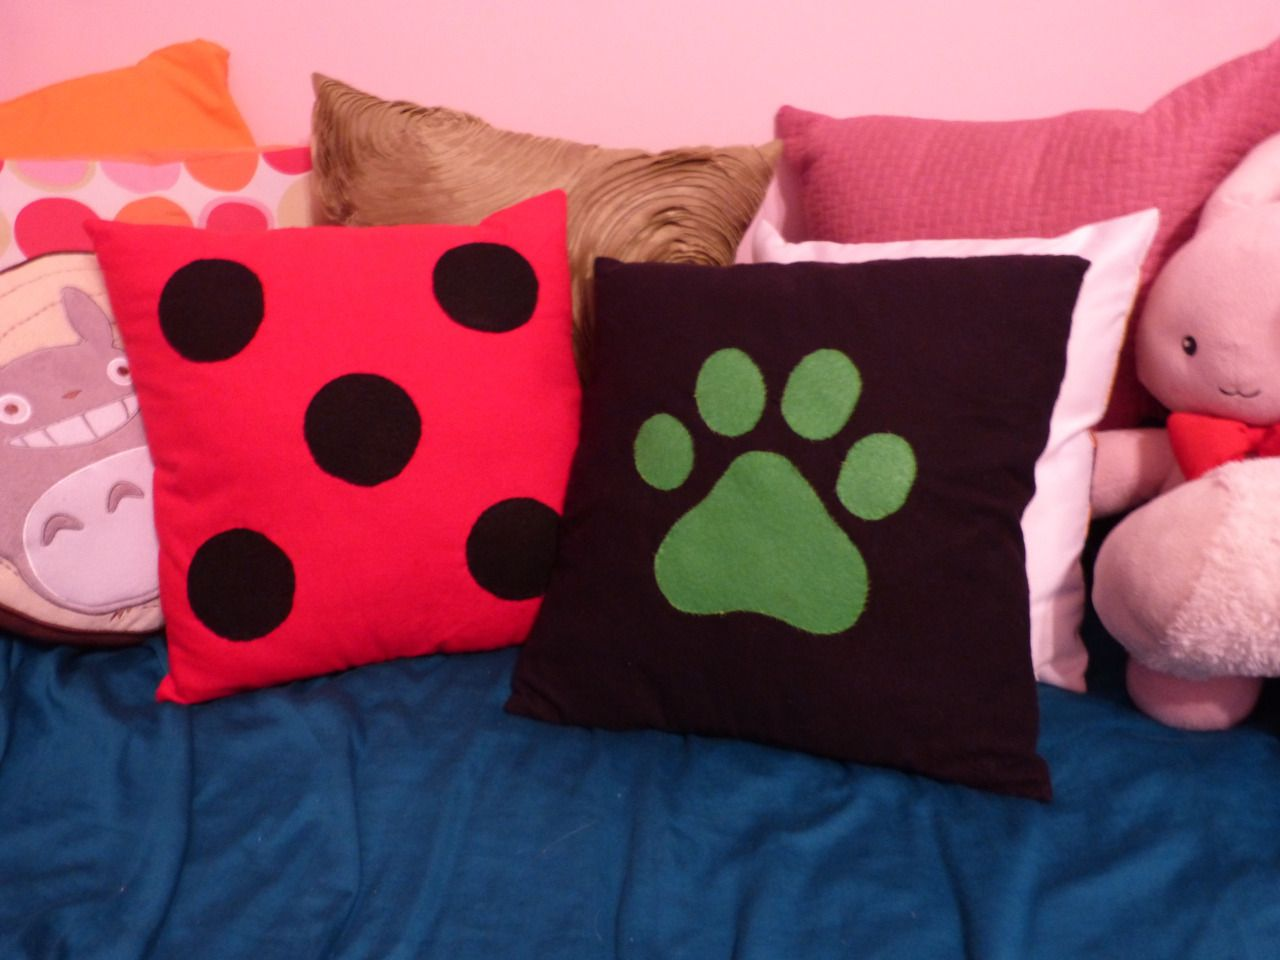 ❤ Miraculous Ladybug & Chat Noir pillows ❤ | Ladybug and Chat Noir ...